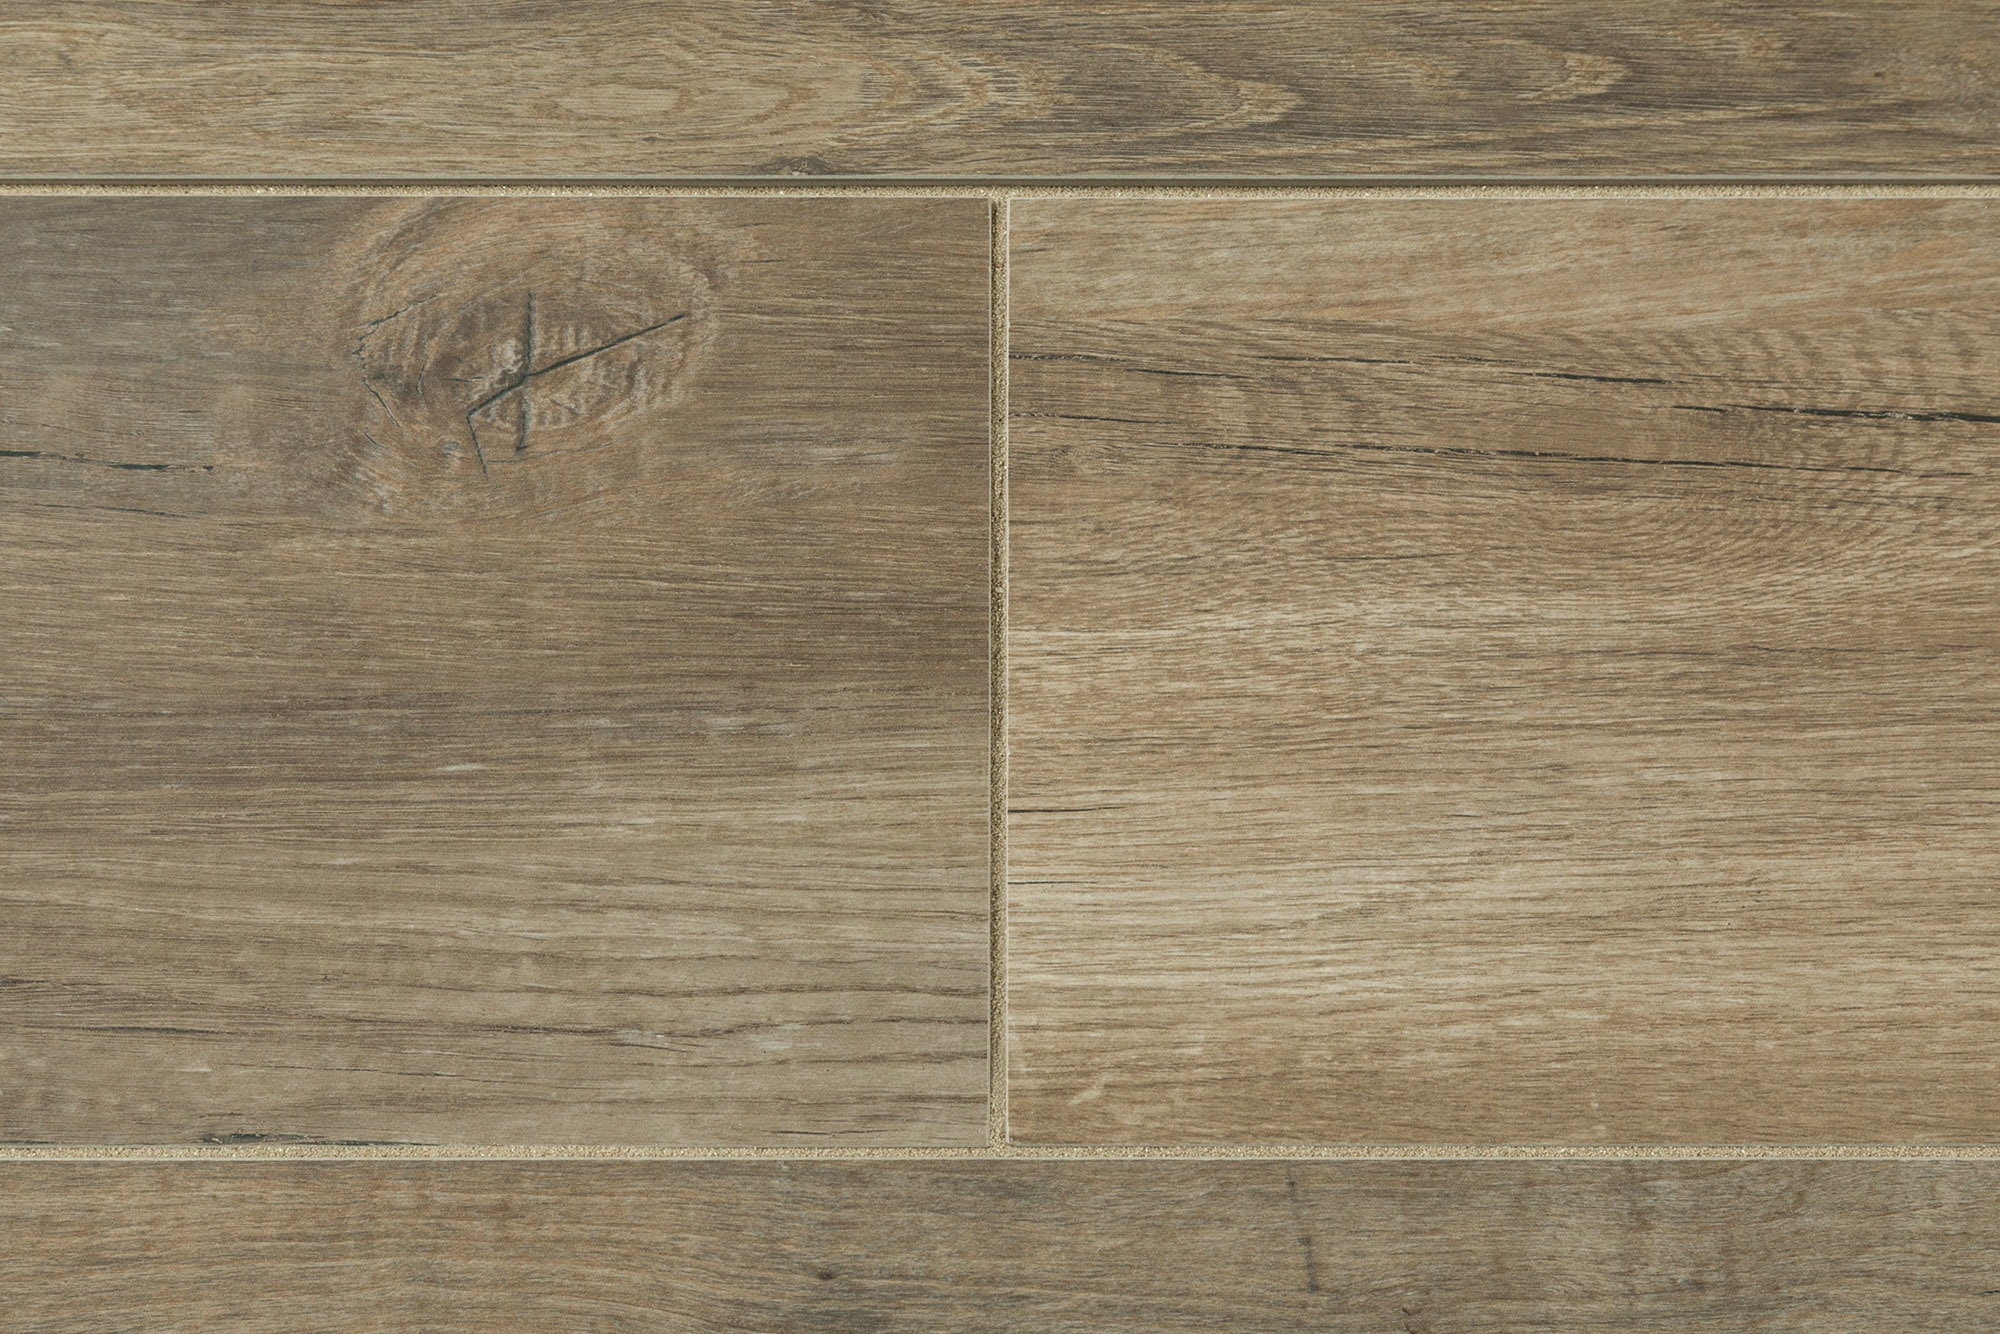 Free samples torino italian porcelain tile rustic sequoia free samples torino italian porcelain tile rustic sequoia collection sierra brown 8x67 dailygadgetfo Image collections